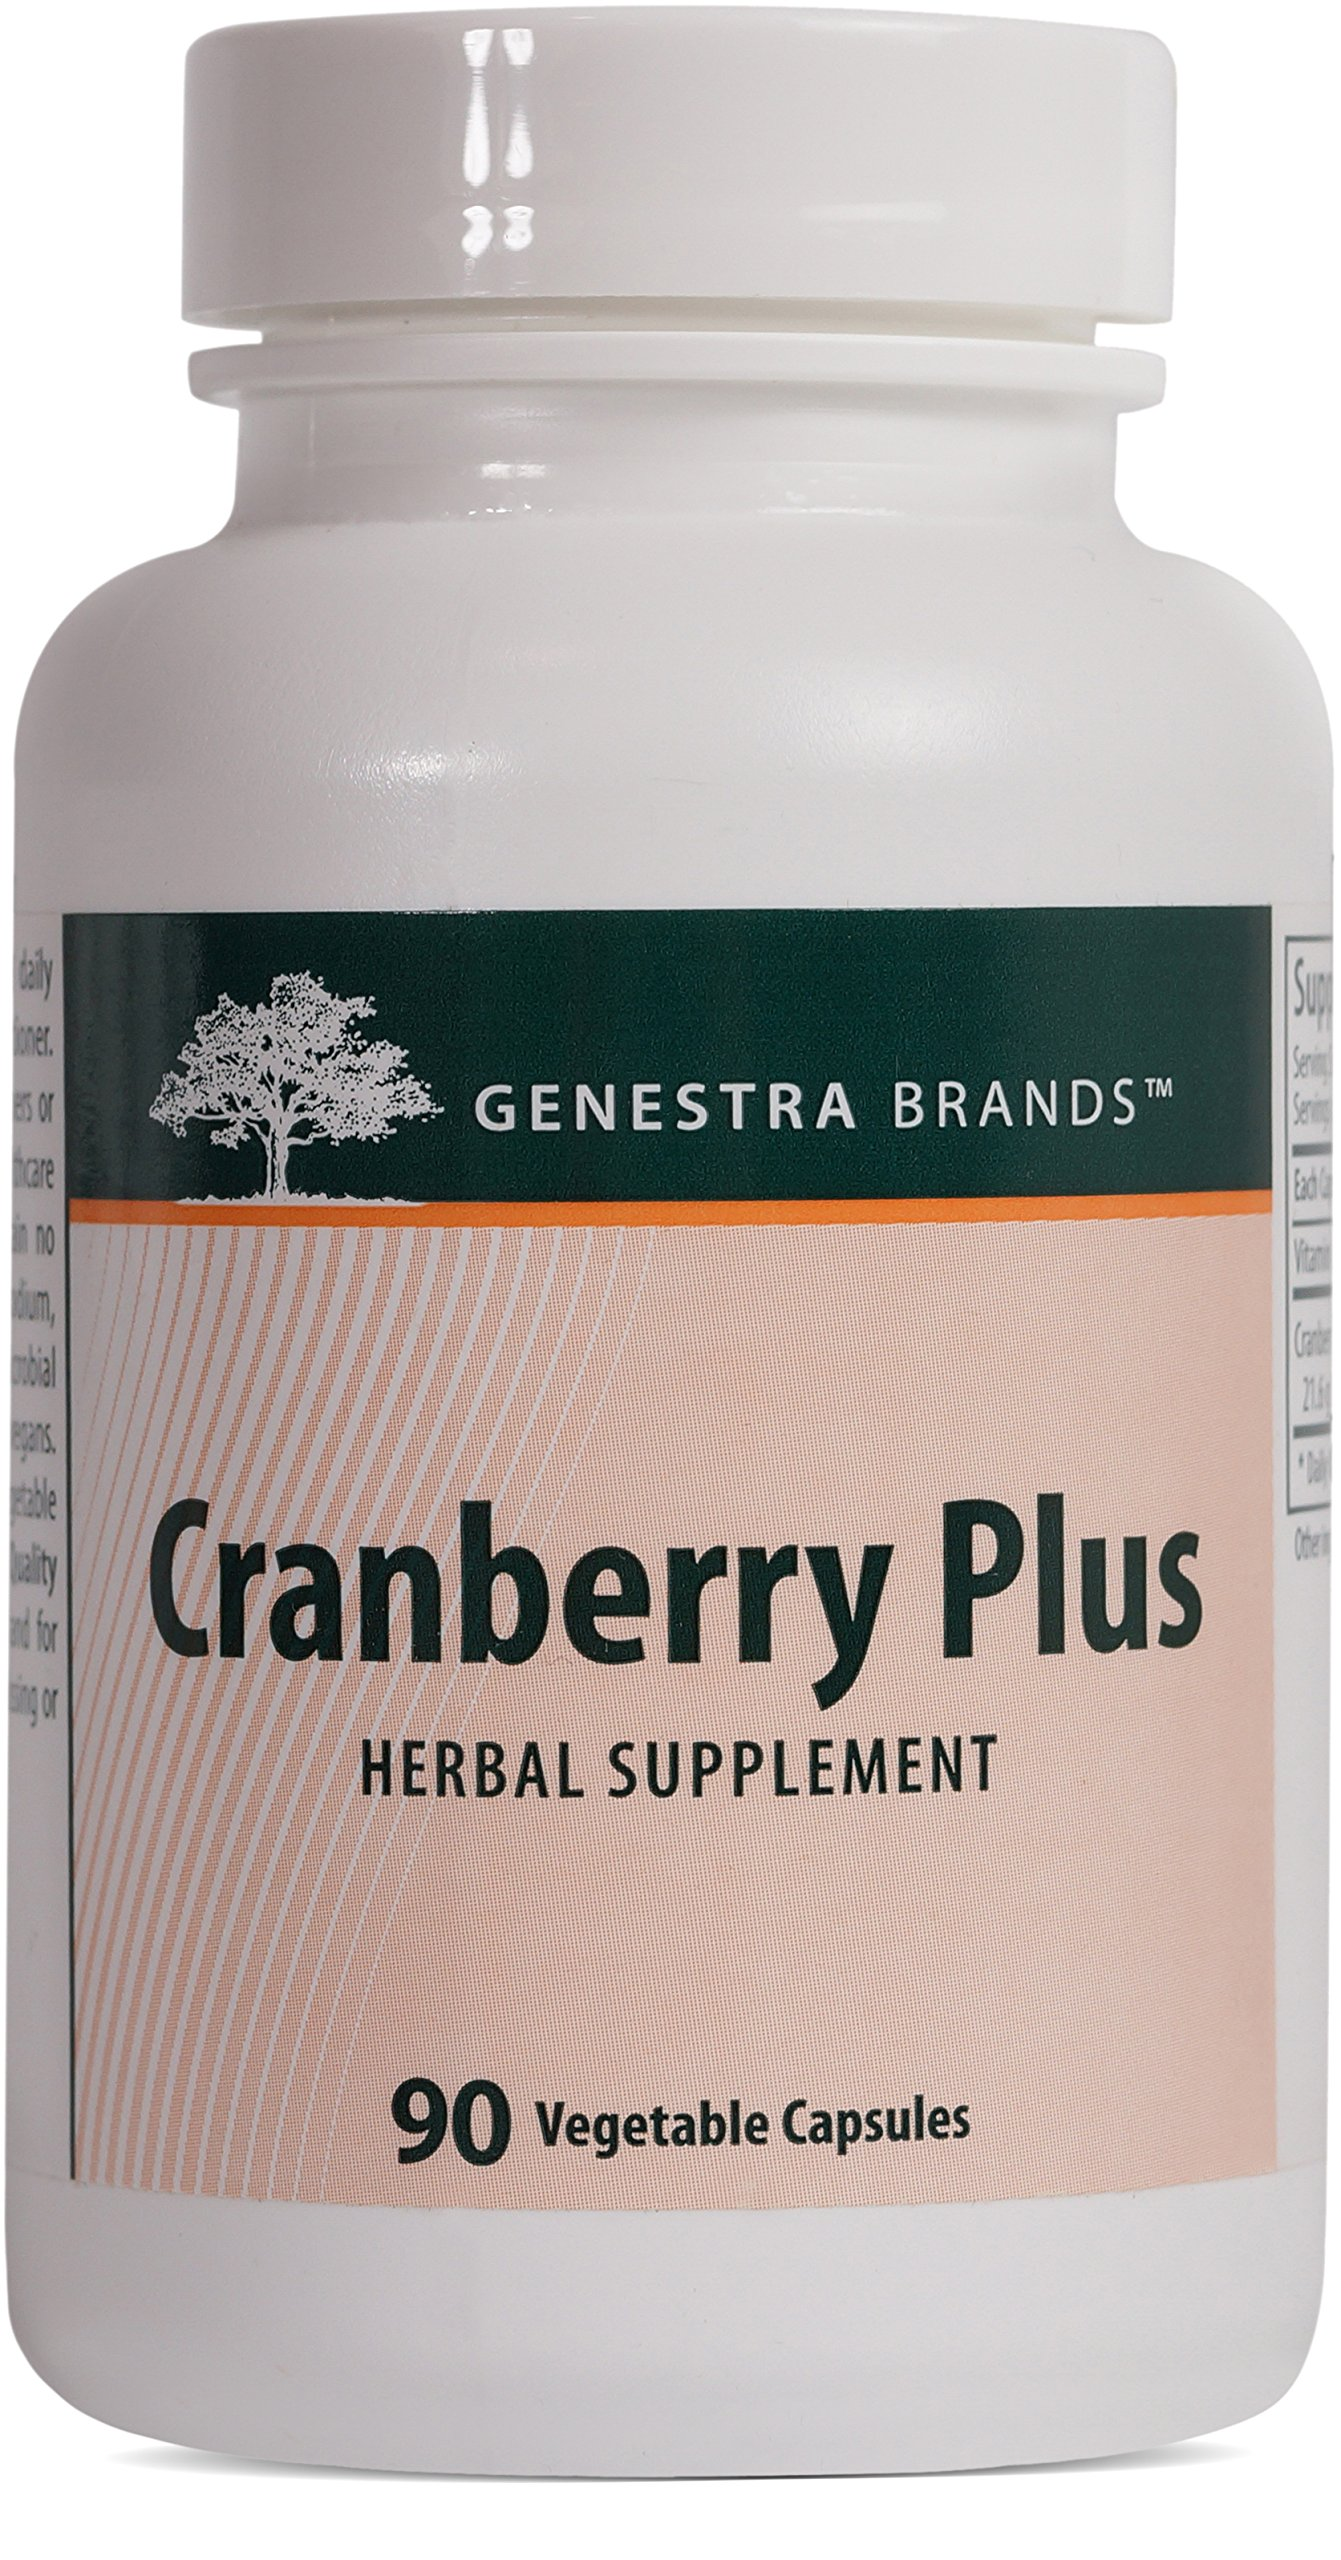 Genestra Brands - Cranberry Plus - Support for Urinary Tract Health* - 90 Vegetable Capsules